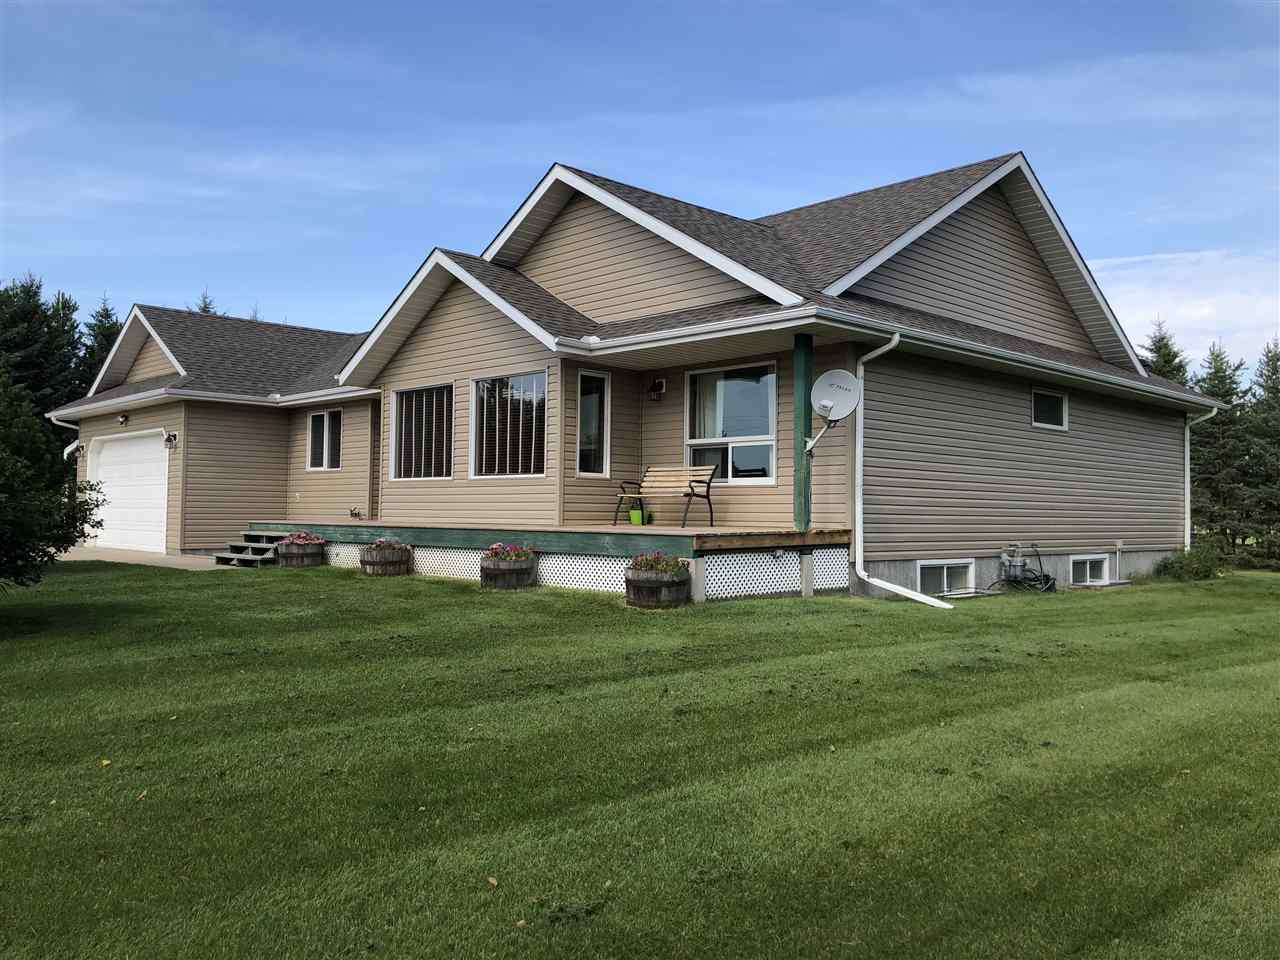 Main Photo: 263018 TWP RD 464: Rural Wetaskiwin County House for sale : MLS®# E4172929